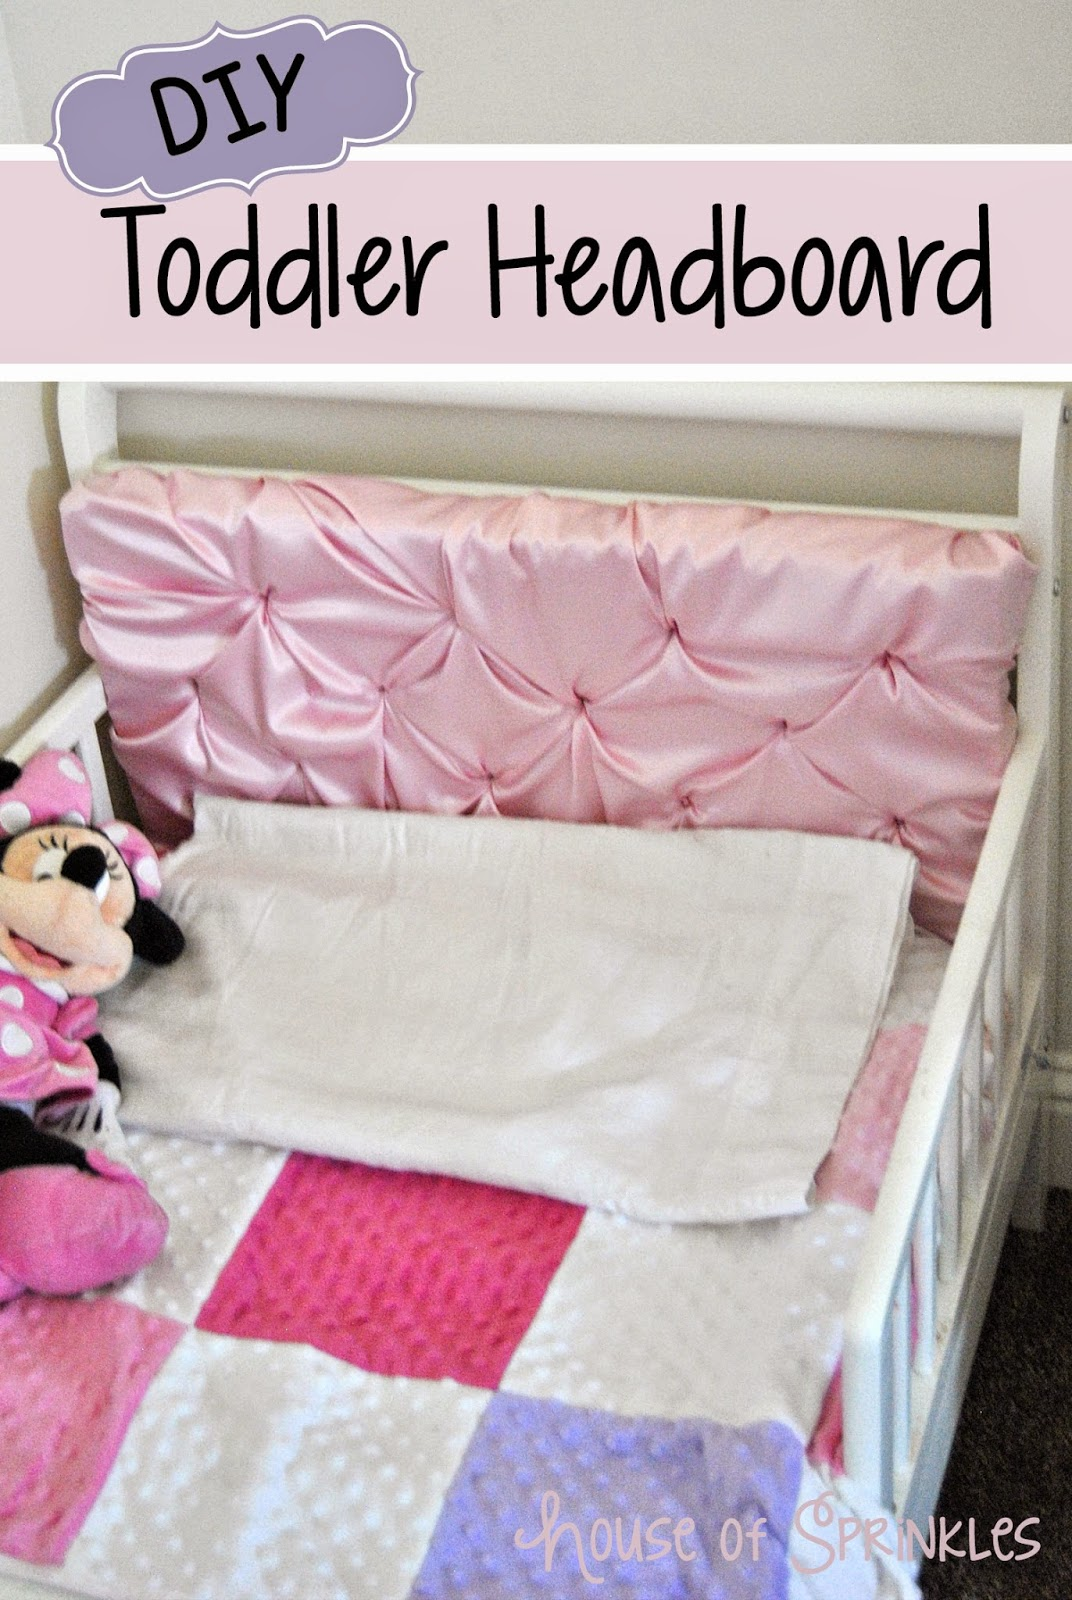 DIY Toddler Headboard with Foamology House of